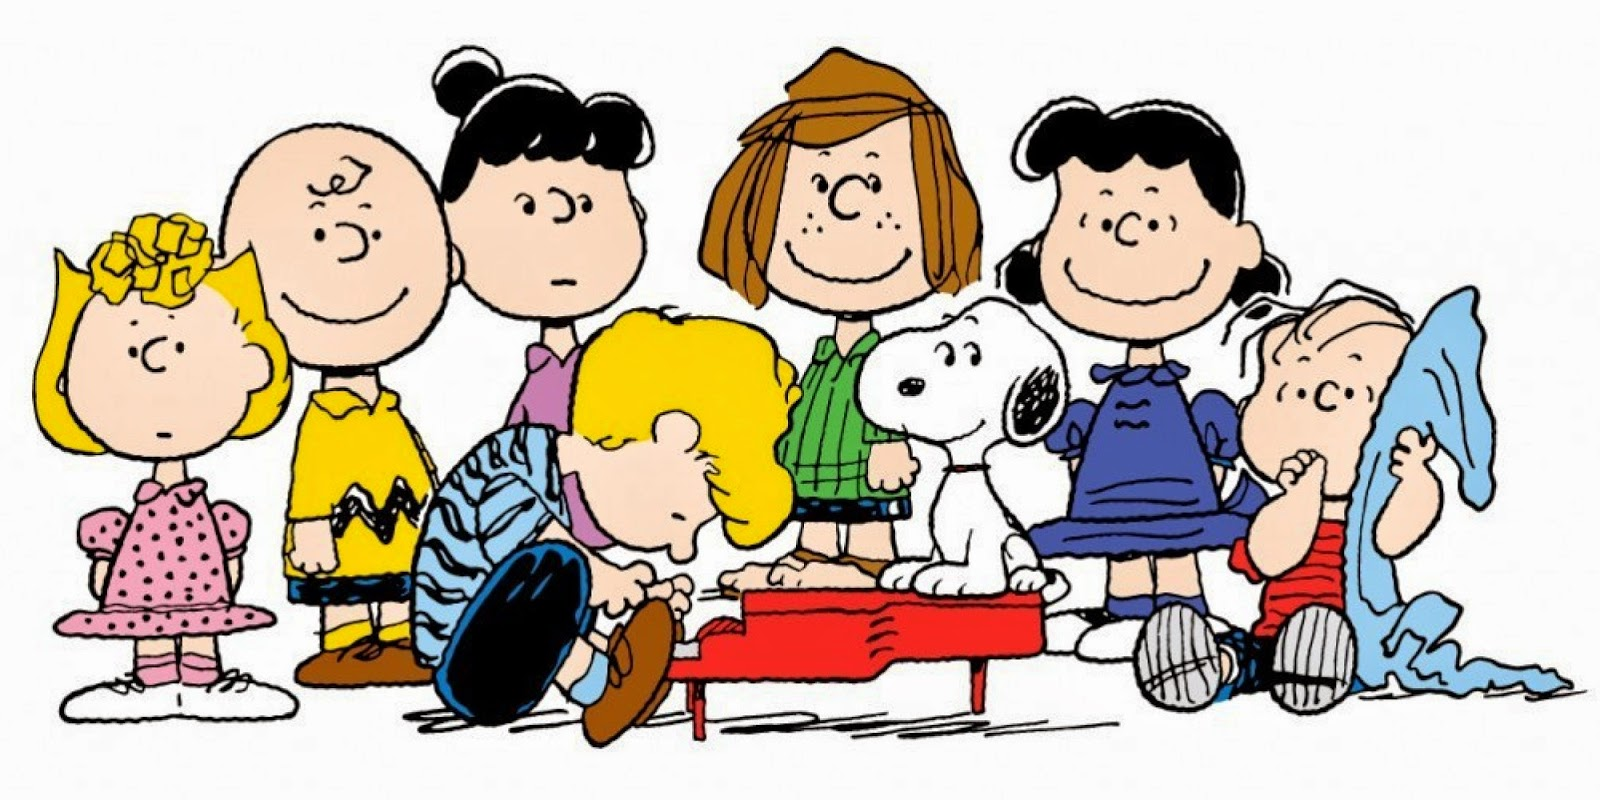 The Holiday Site Christmas Charlie Brown And peanuts Clip Art